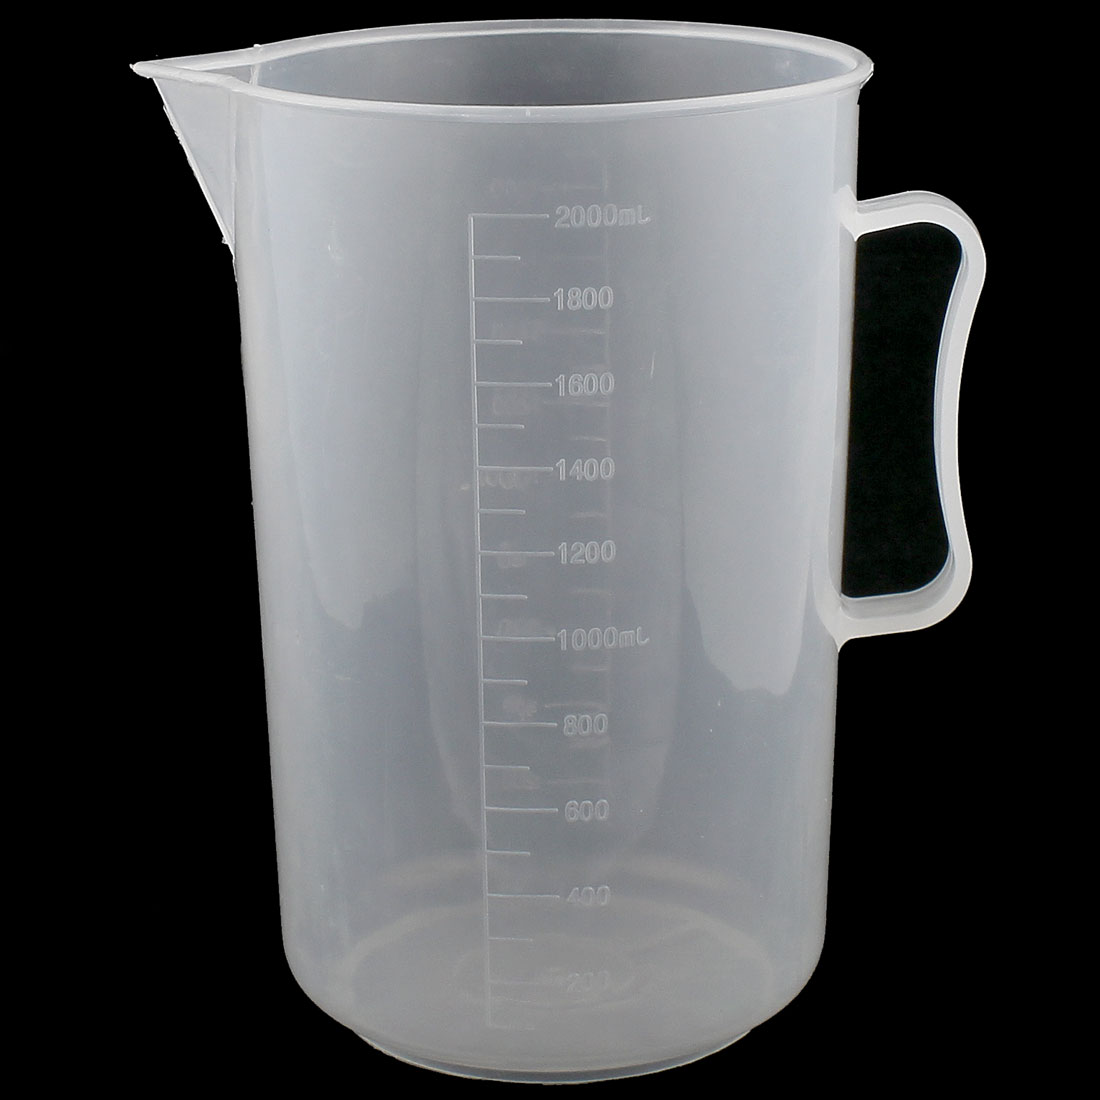 2000mL Graduated Plastic Liquid Water Testing Measuring Measure Cup for Lab Laboratory Chemistry Experiment